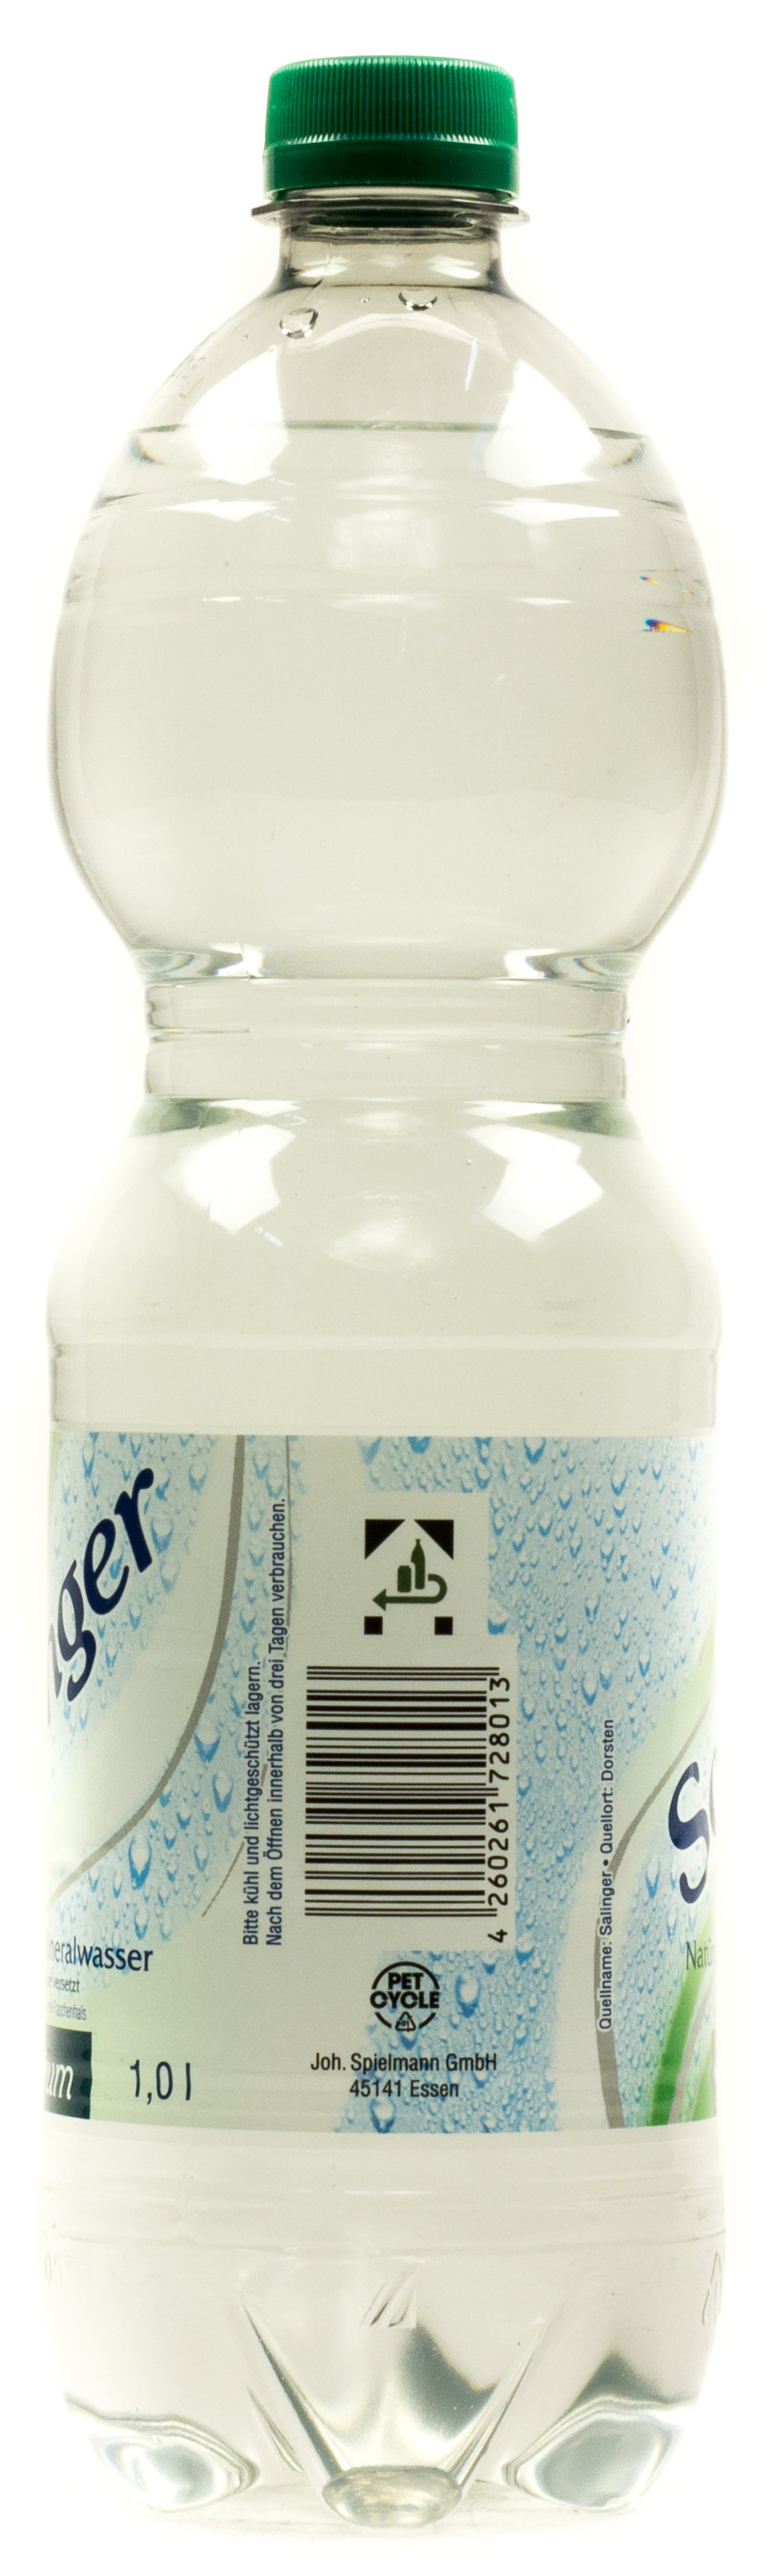 Salinger Mineralwasser Medium 1 l PET Einweg